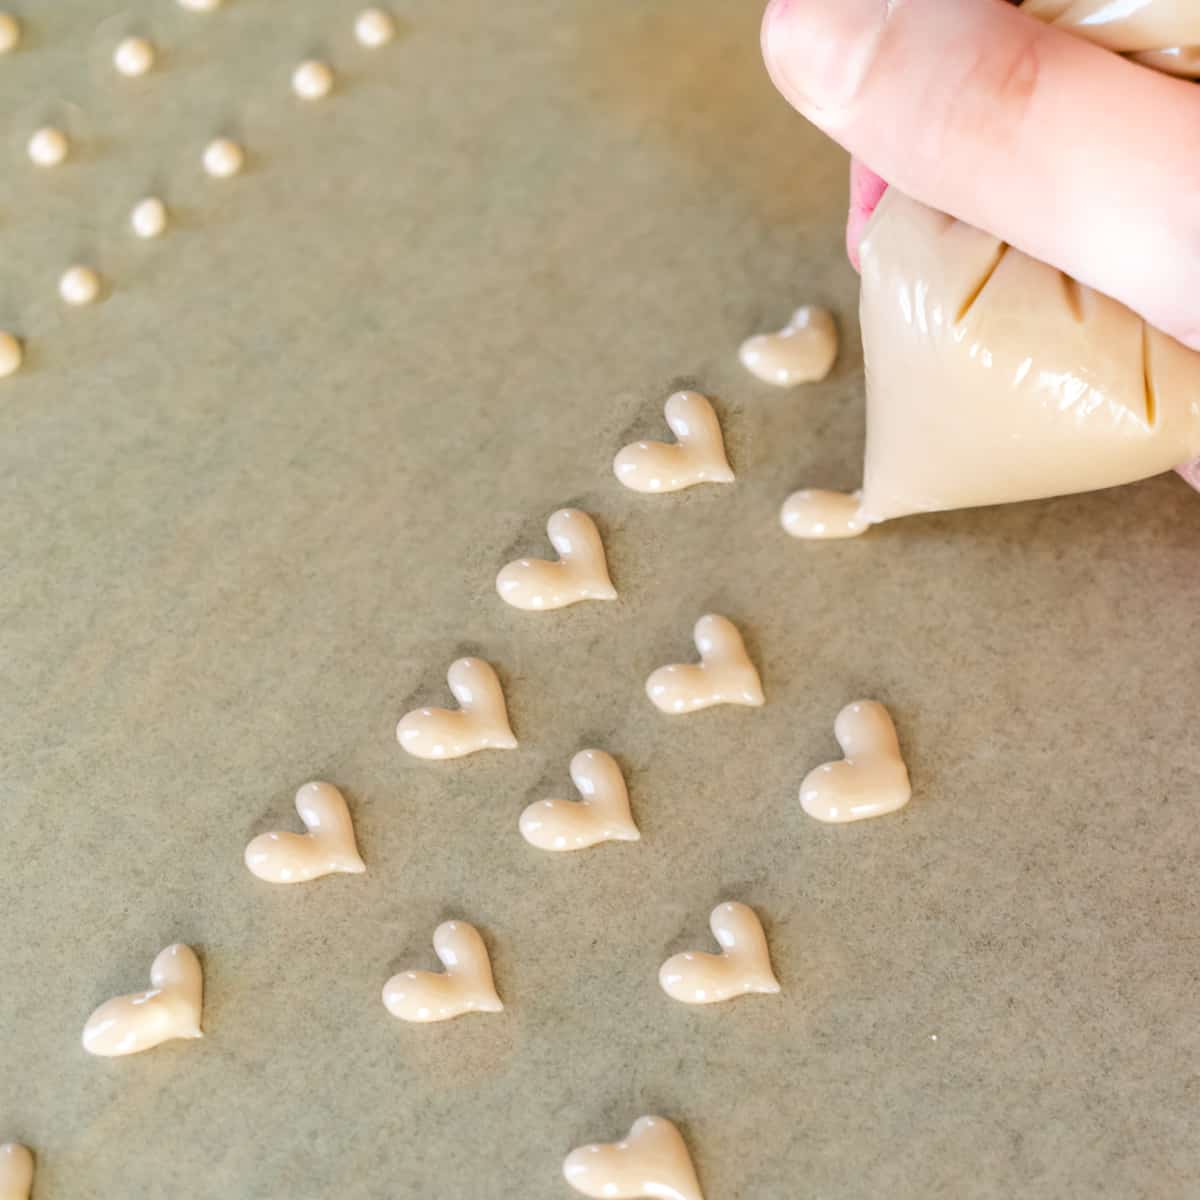 Piping heart shapes and dots onto brown parchment paper with pink sugar mixture.